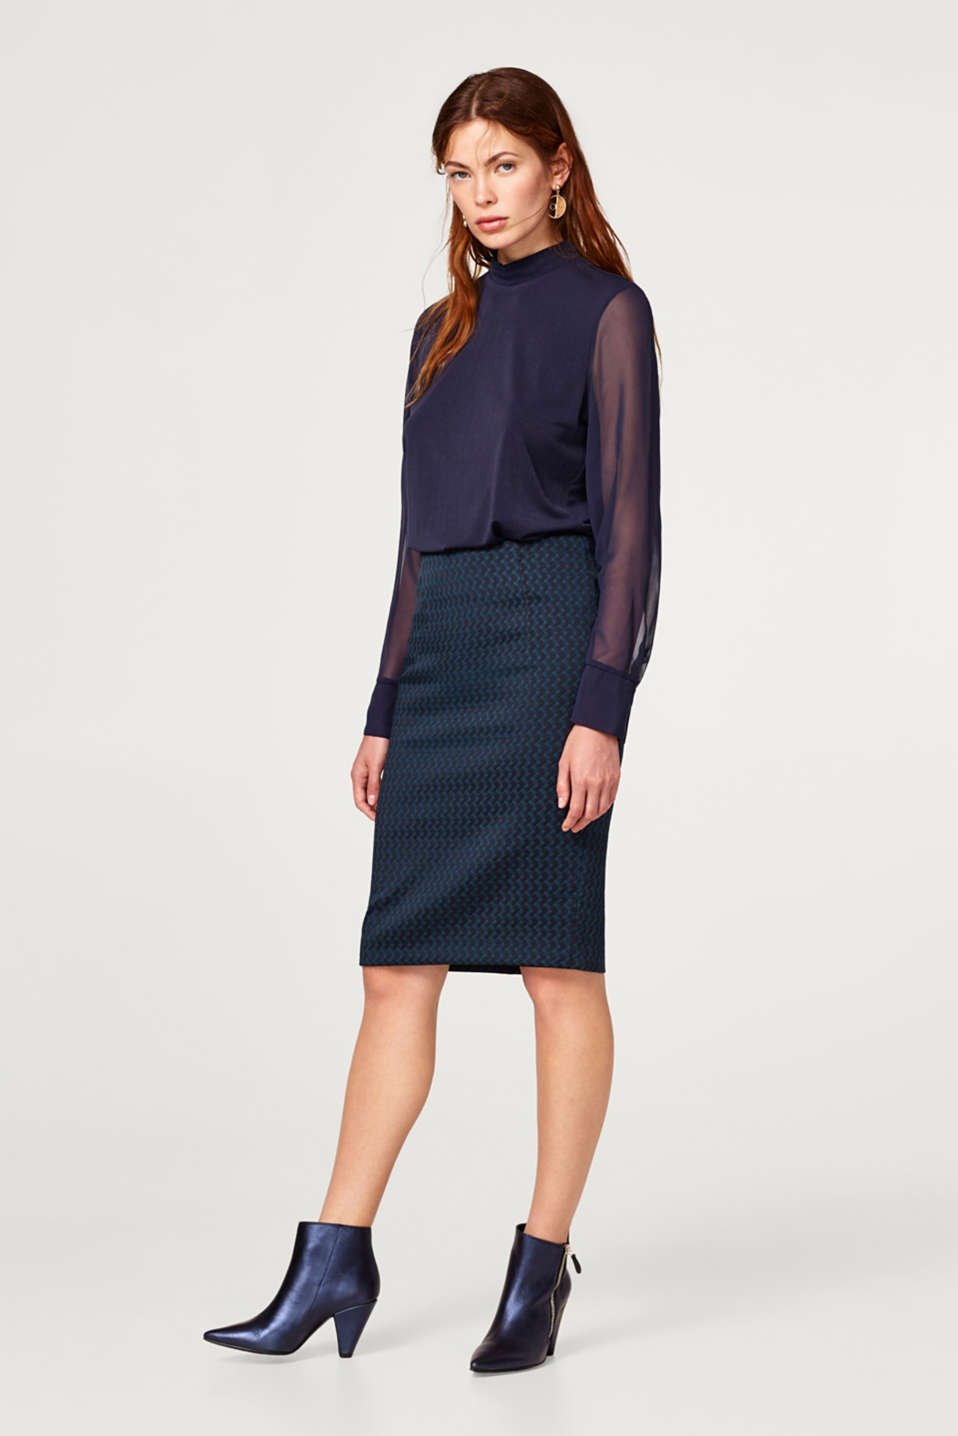 Pencil skirt with a jacquard pattern